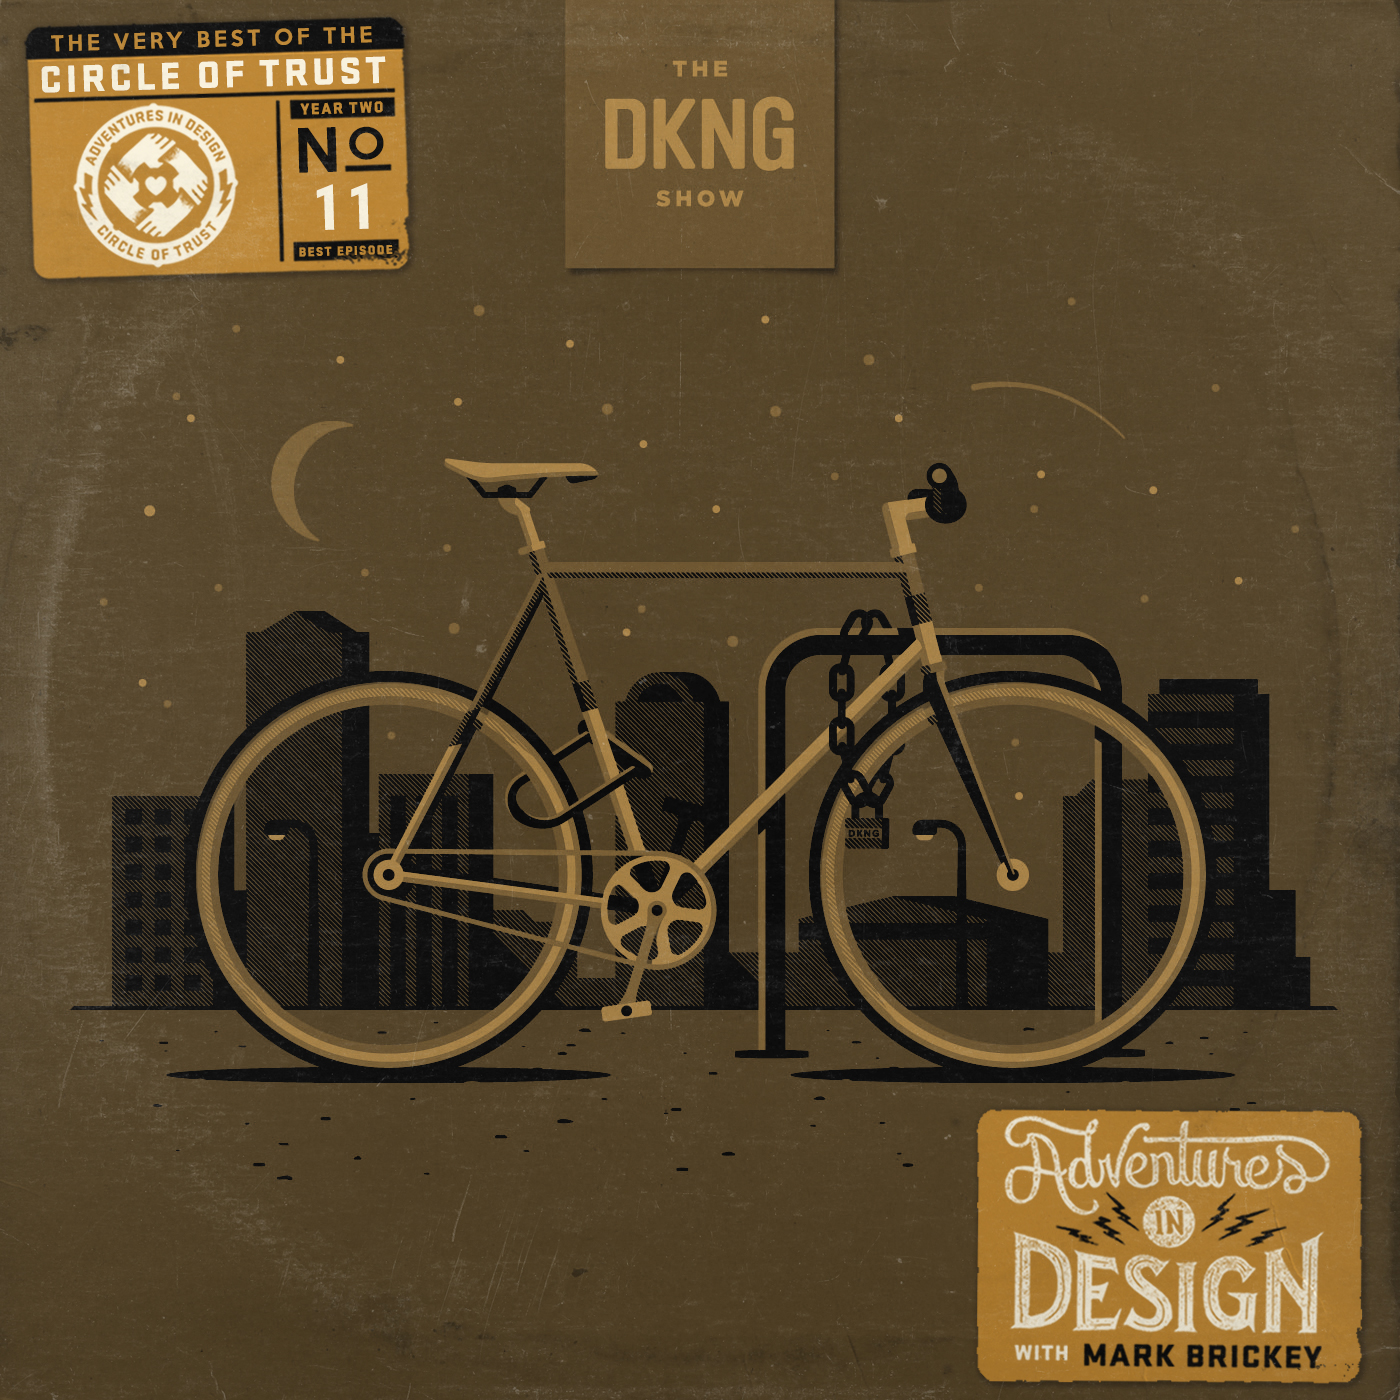 The Best Of The Circle Of Trust Year Two: AID 473 - The DKNG Show: Chapter 5